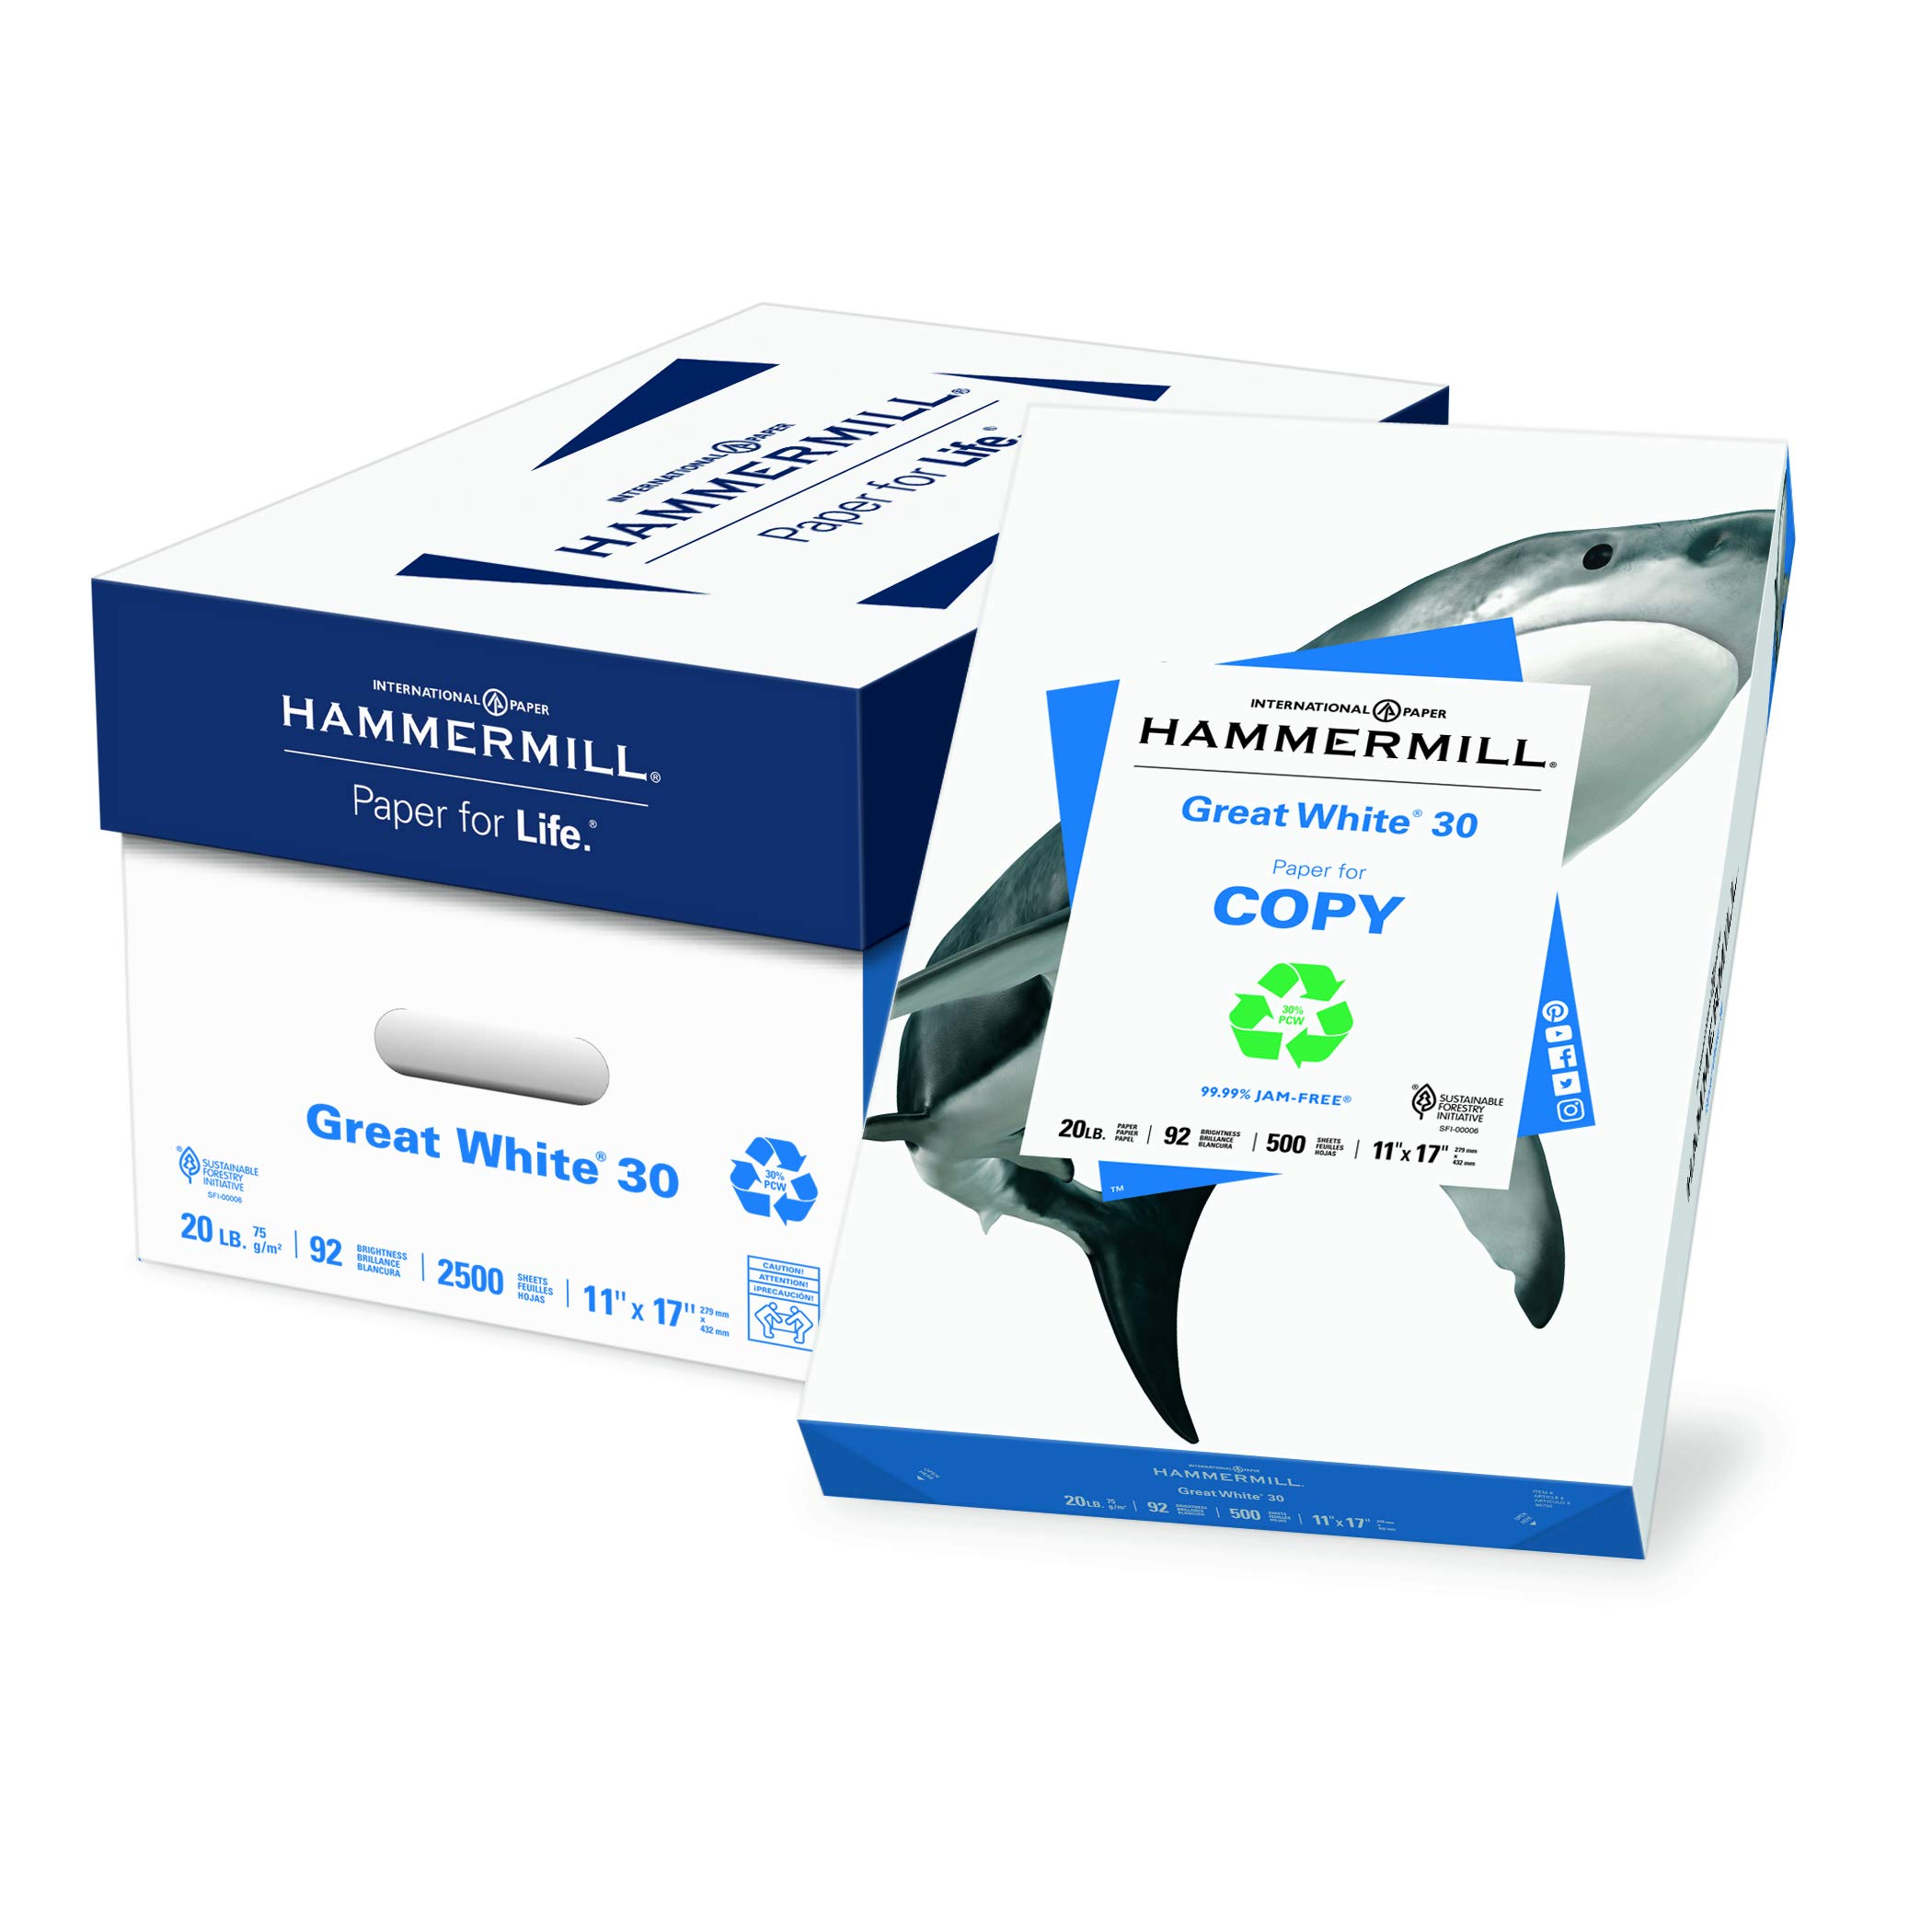 Hammermill Paper, Great White 30% Recycled Printer Paper, 11 x 17 Paper, Ledger Size, 20lb, 92 Bright, 5 Reams / 2,500 Sheets (086750C) Acid Free Paper